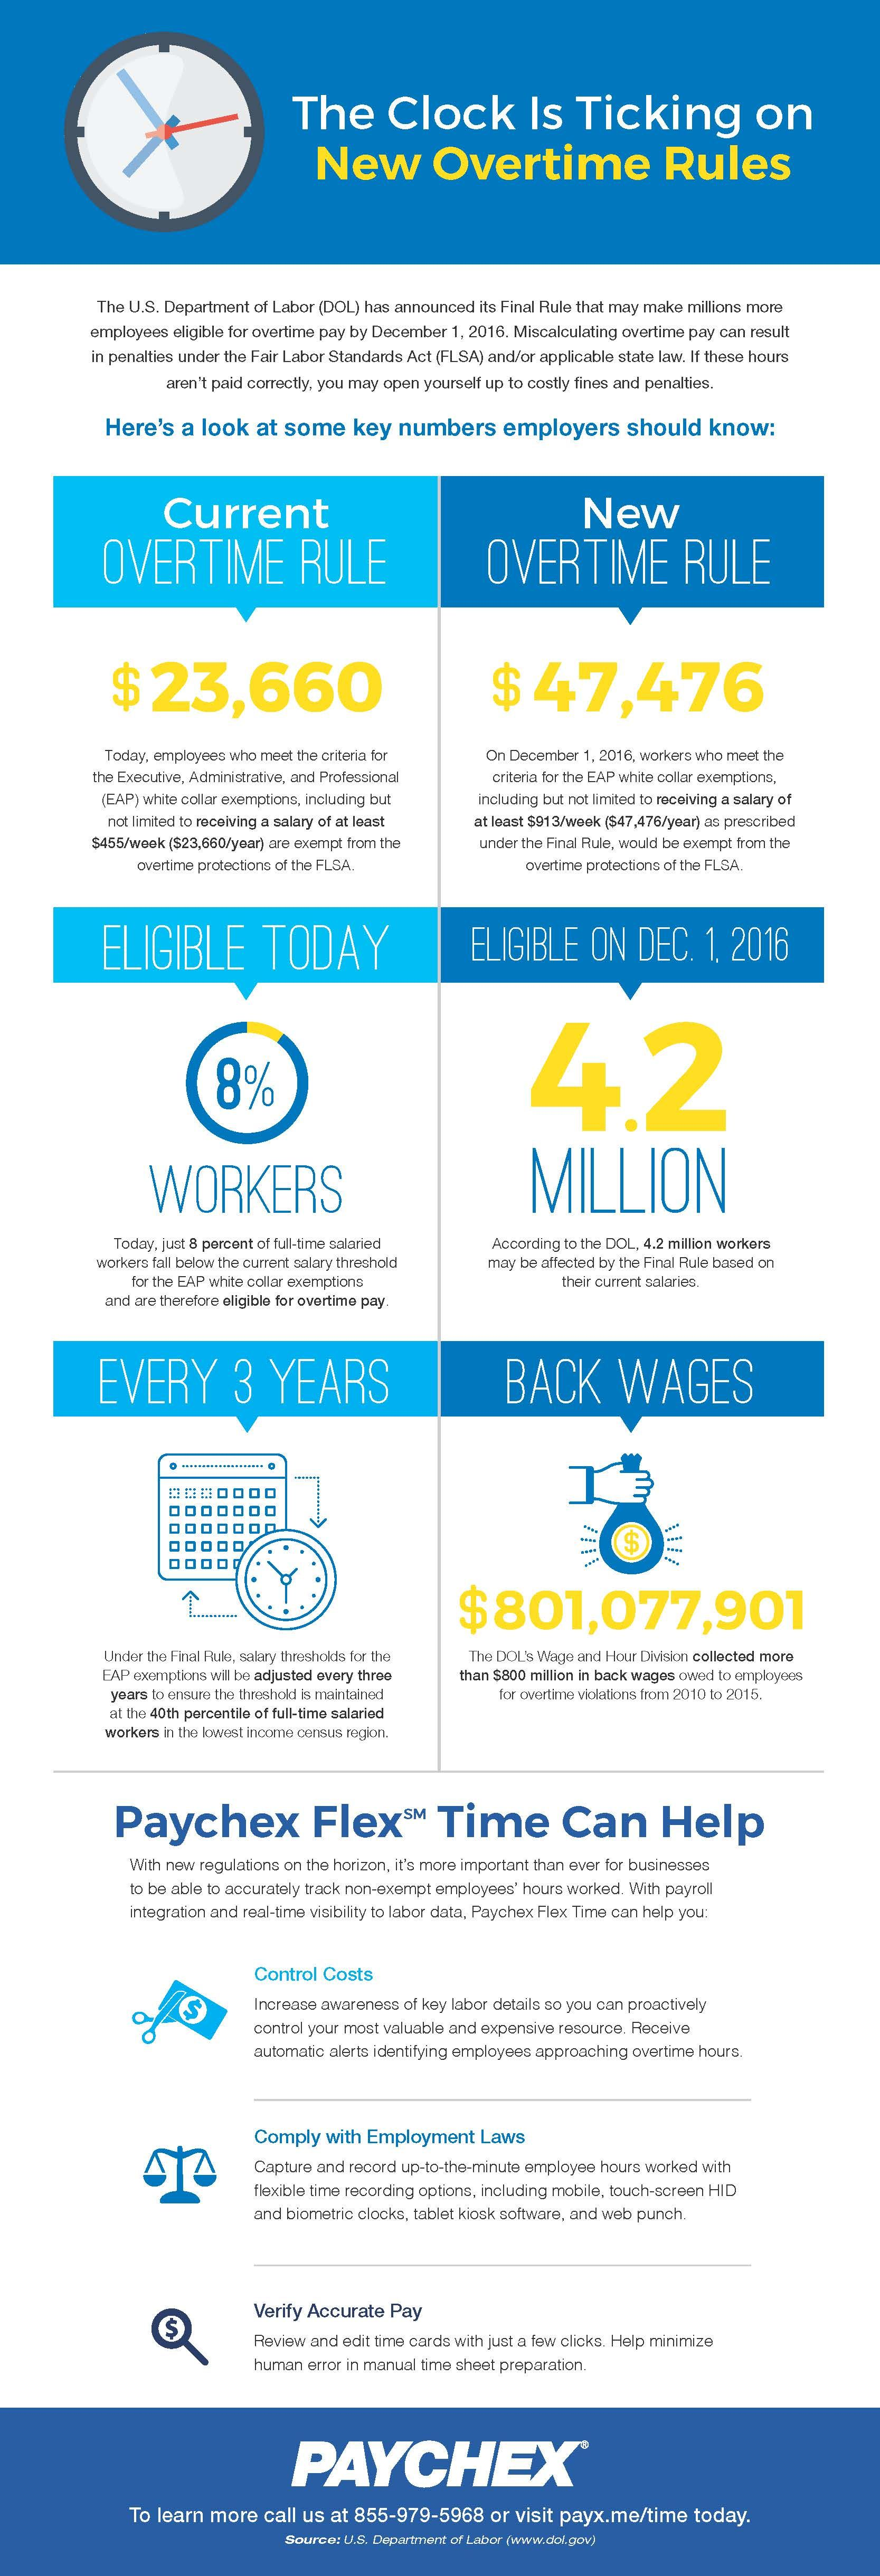 [Infographic] The Clock is Ticking on New Overtime Rules